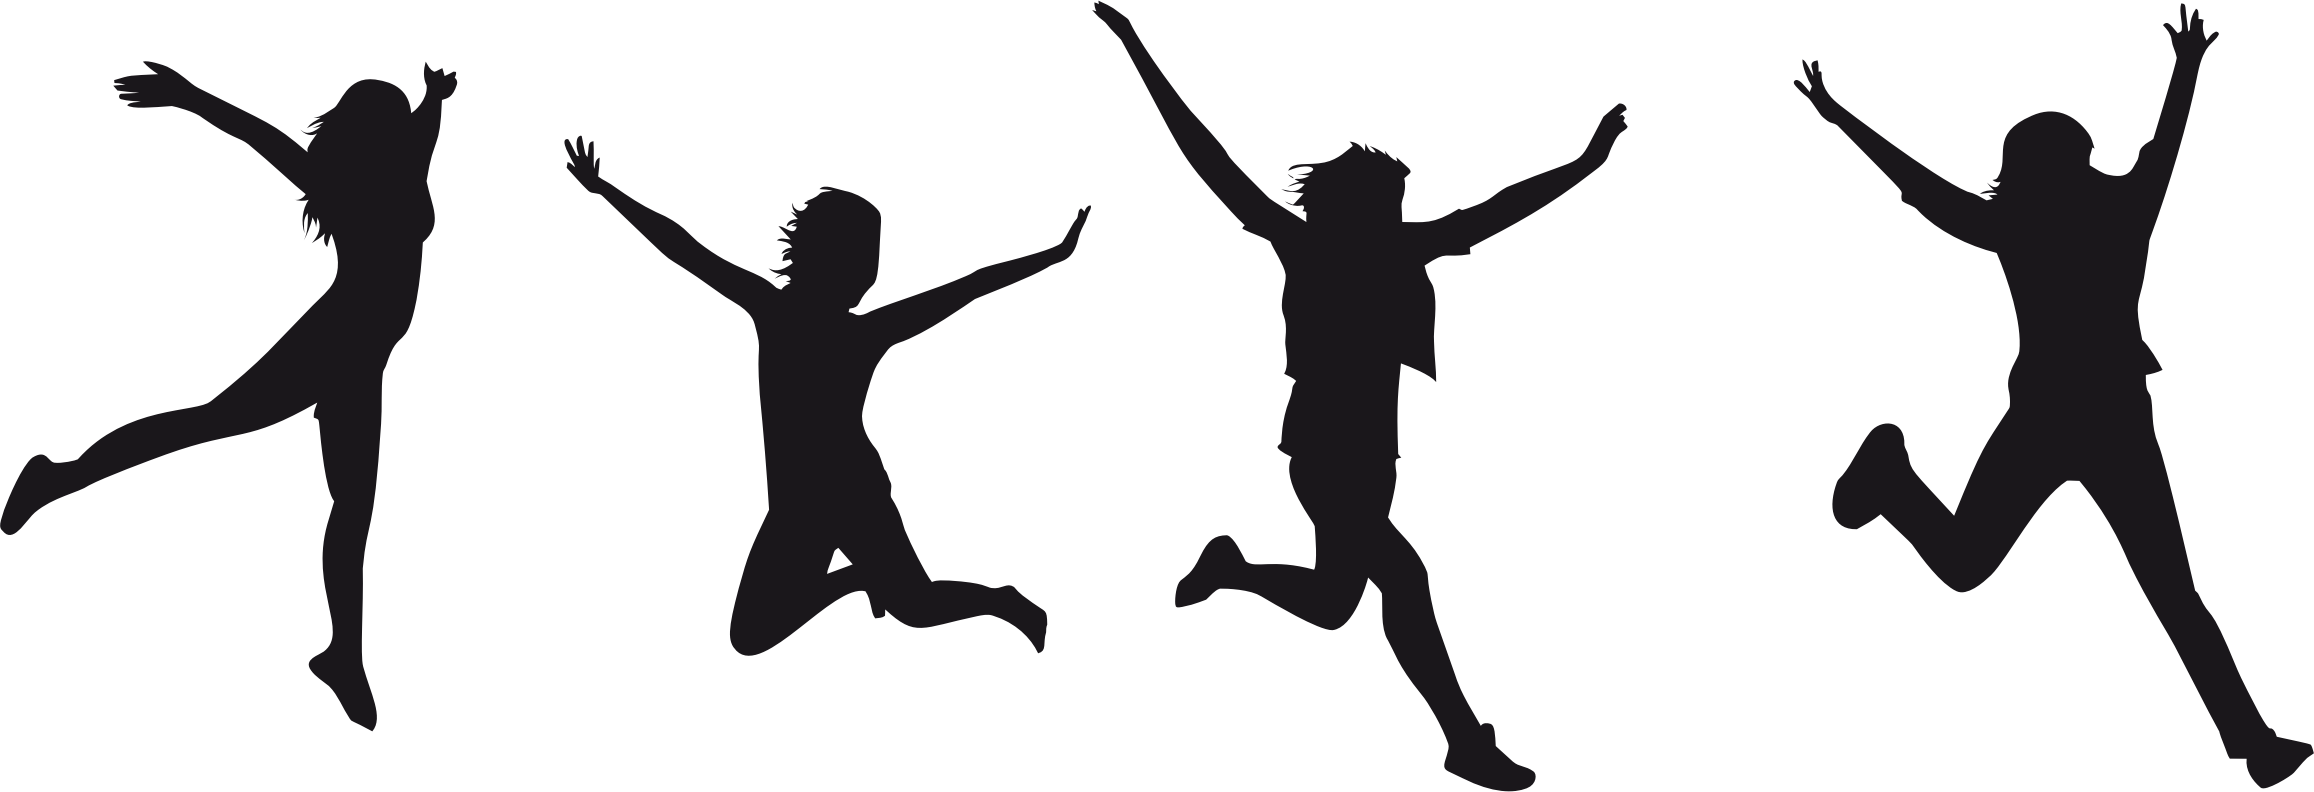 Clipart people diving. Silhouette of jumping at